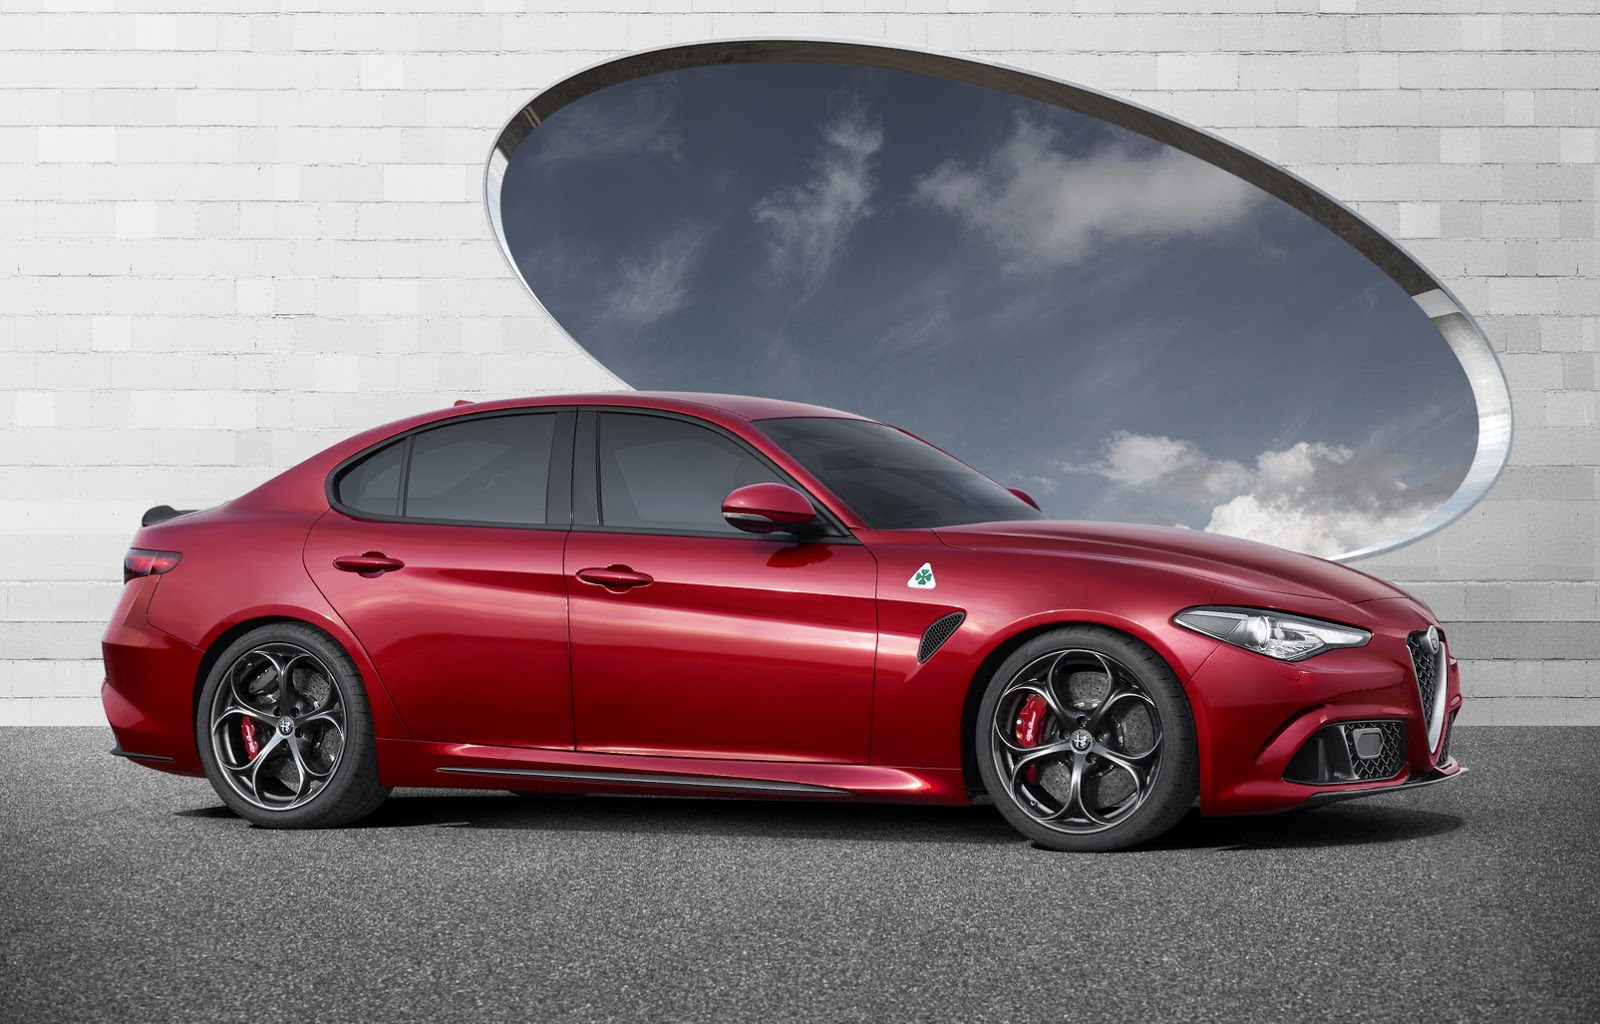 alfa romeo giulietta quadrifoglio verde review with Index Php on Alfa Romeo Giulia Ti Super 85c6f609c94e98c4 as well Alfa romeo giulietta cloverleaf review furthermore Photos likewise Alfa Romeo Giulia 2017 in addition Showthread.